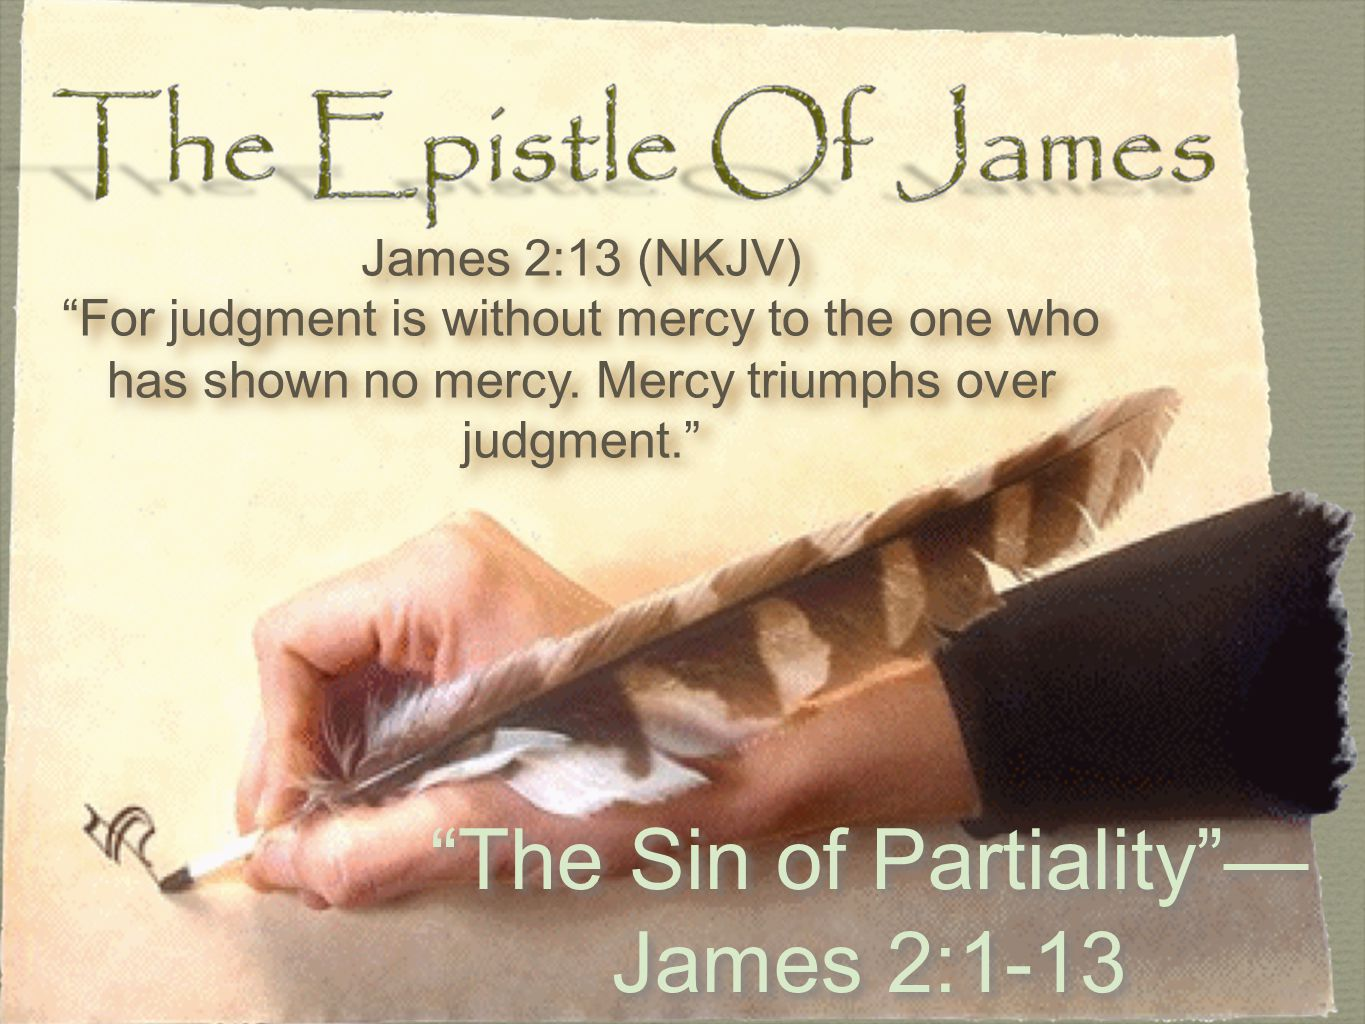 The Sin of Partiality — James 2:1-13 James 2:13 (NKJV) For judgment is without mercy to the one who has shown no mercy.